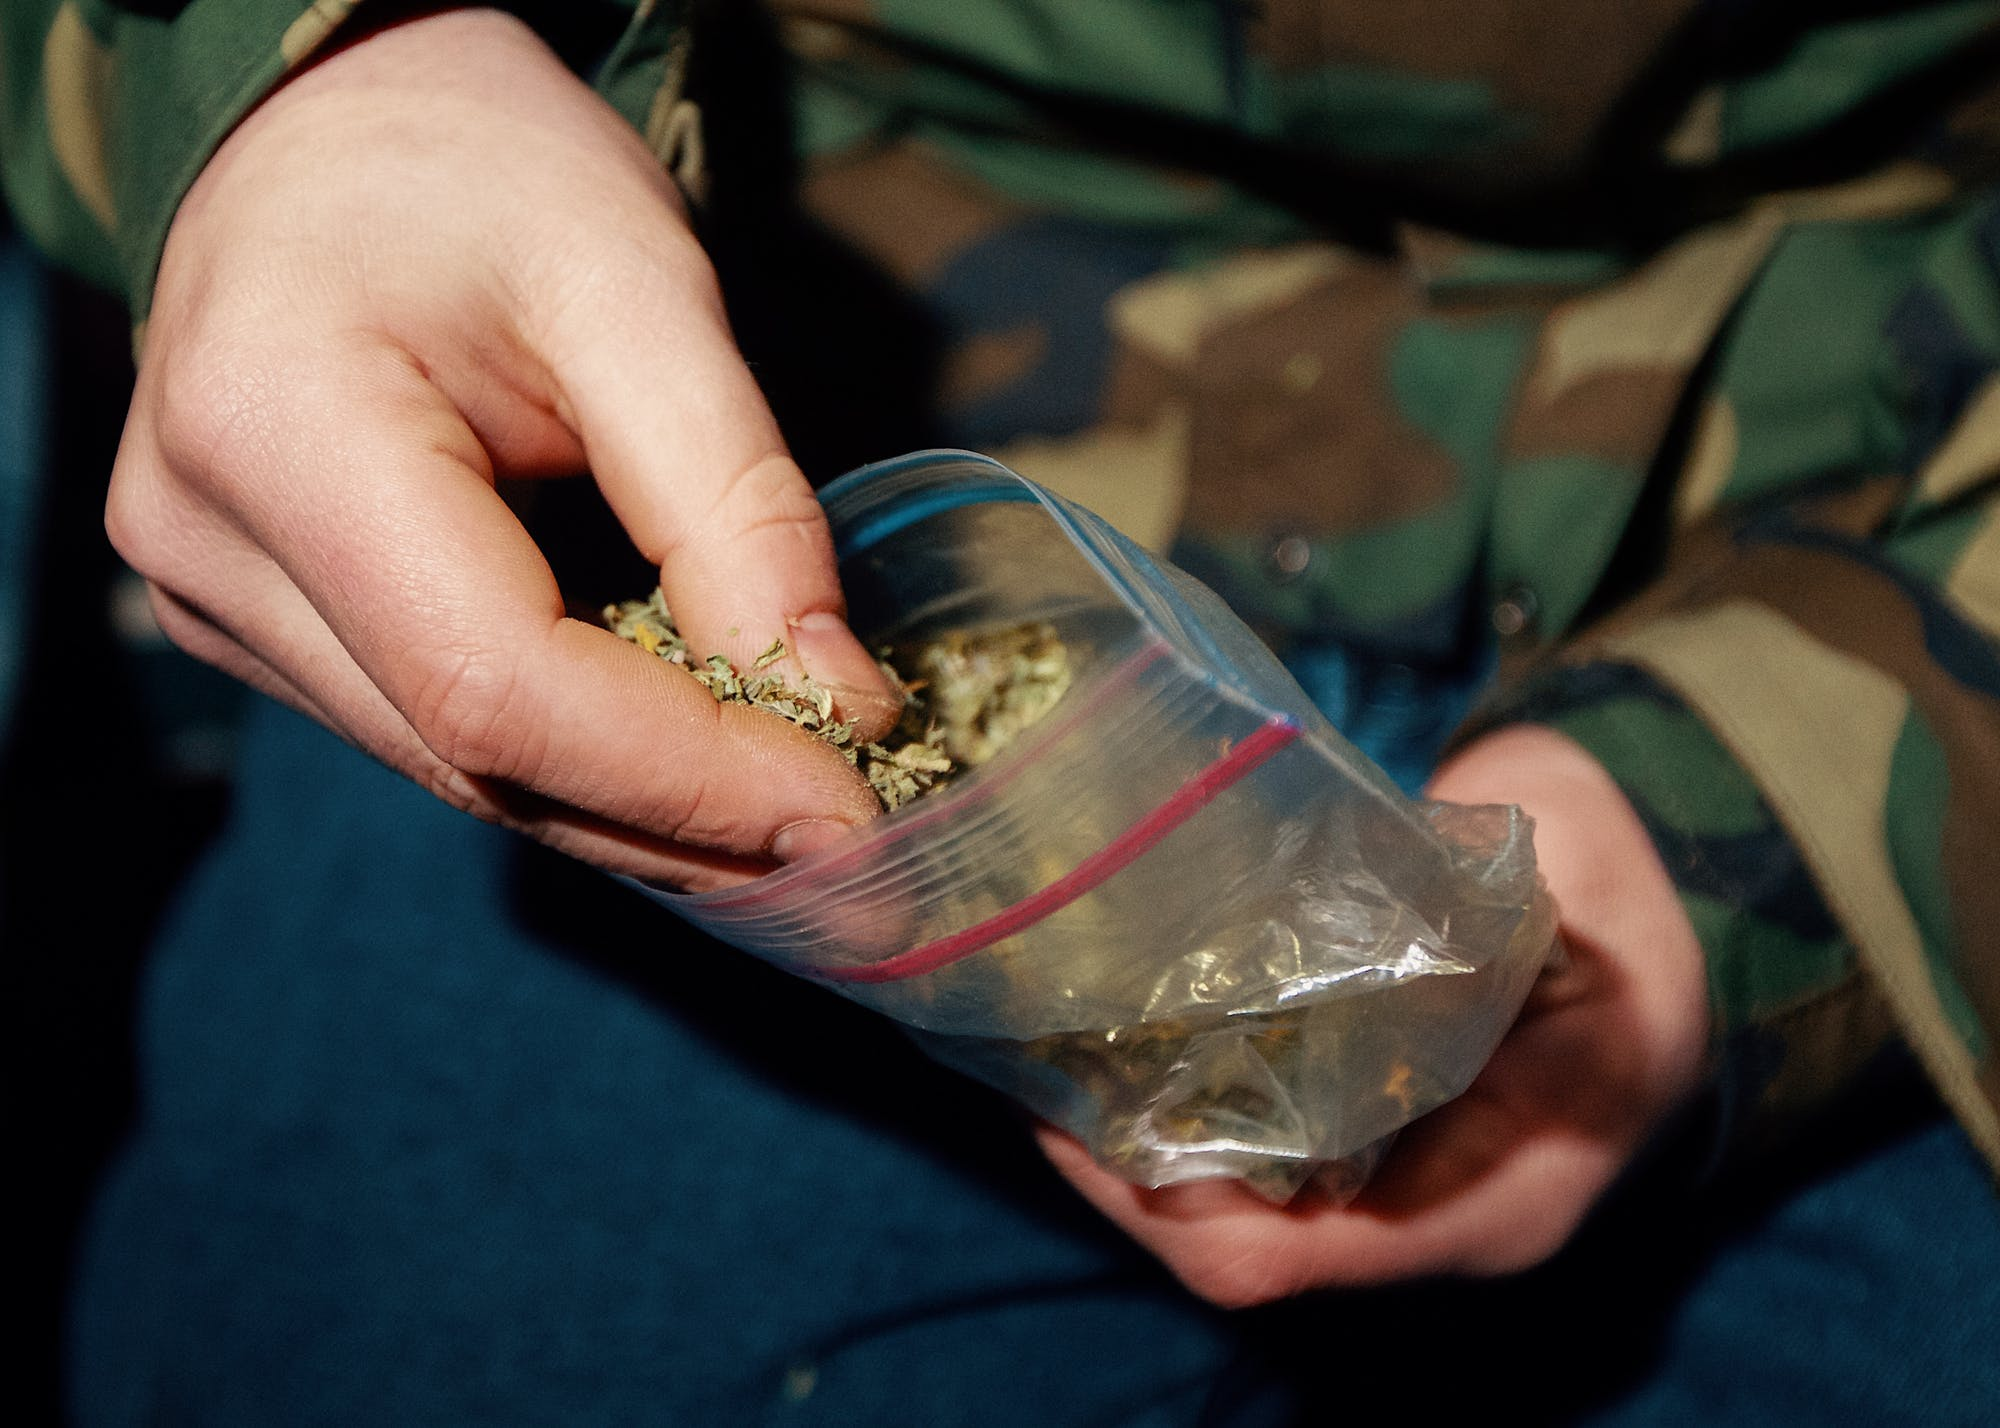 What is Laced Weed? The Effects, Risks, and How to Identify